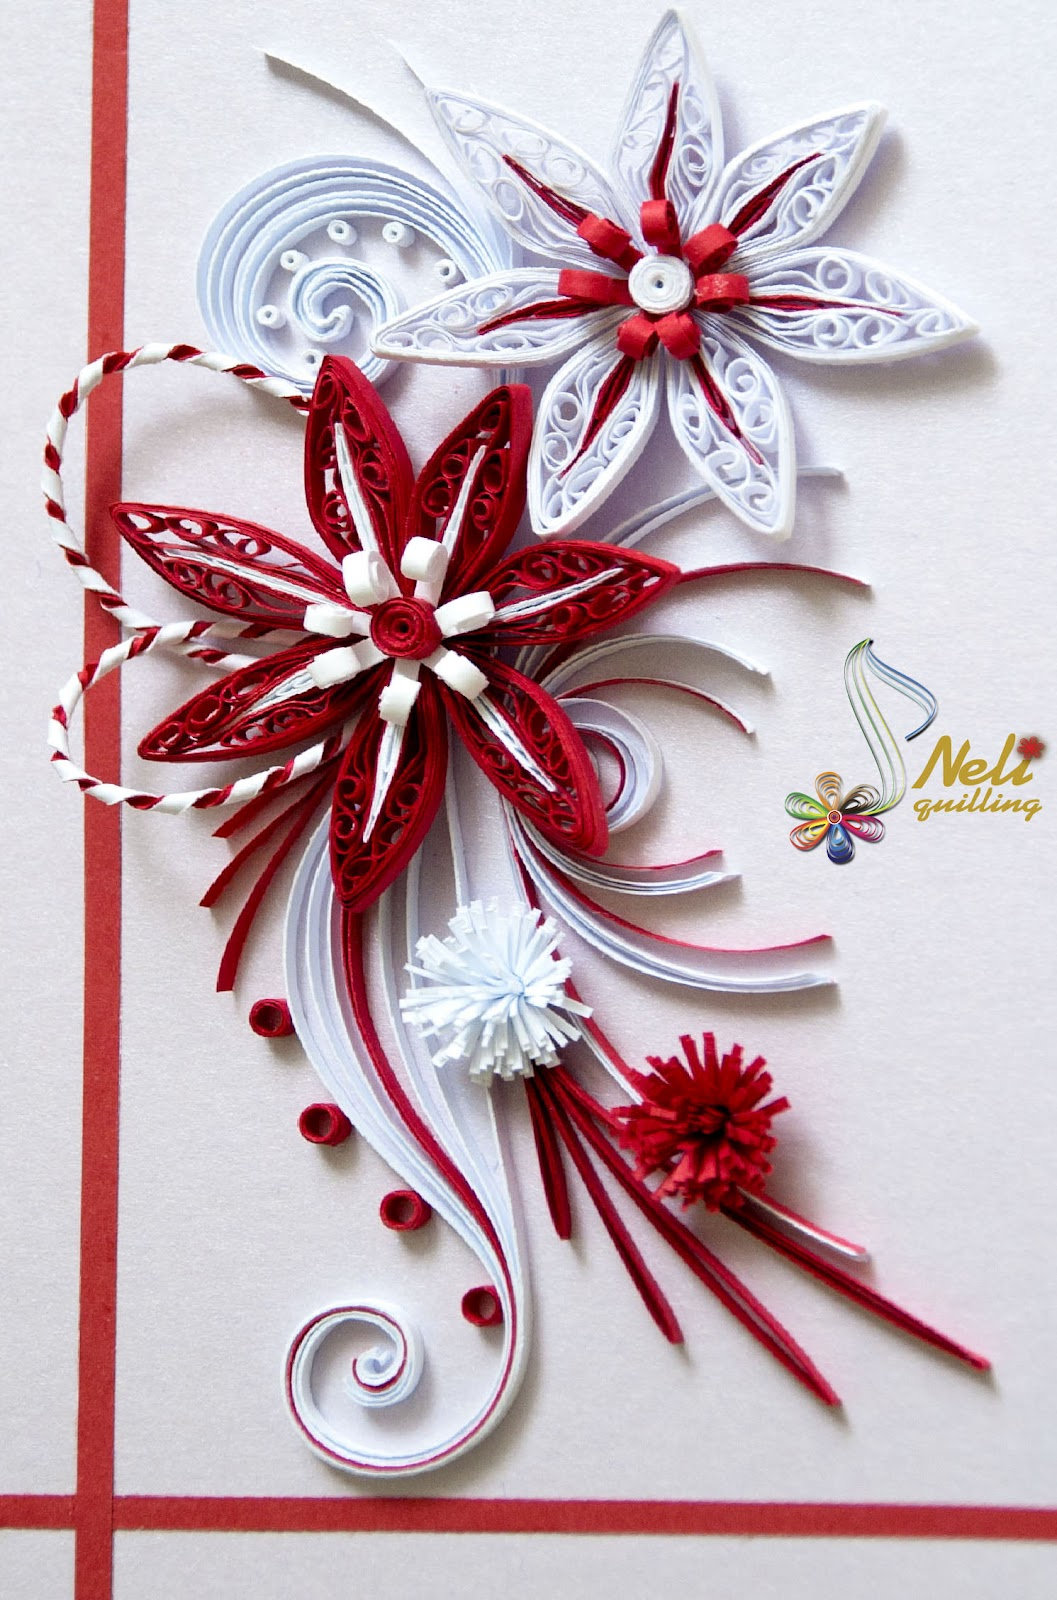 Neli quilling art quilling cards baba marta 105 145 quilling cards baba marta 105 145 m4hsunfo